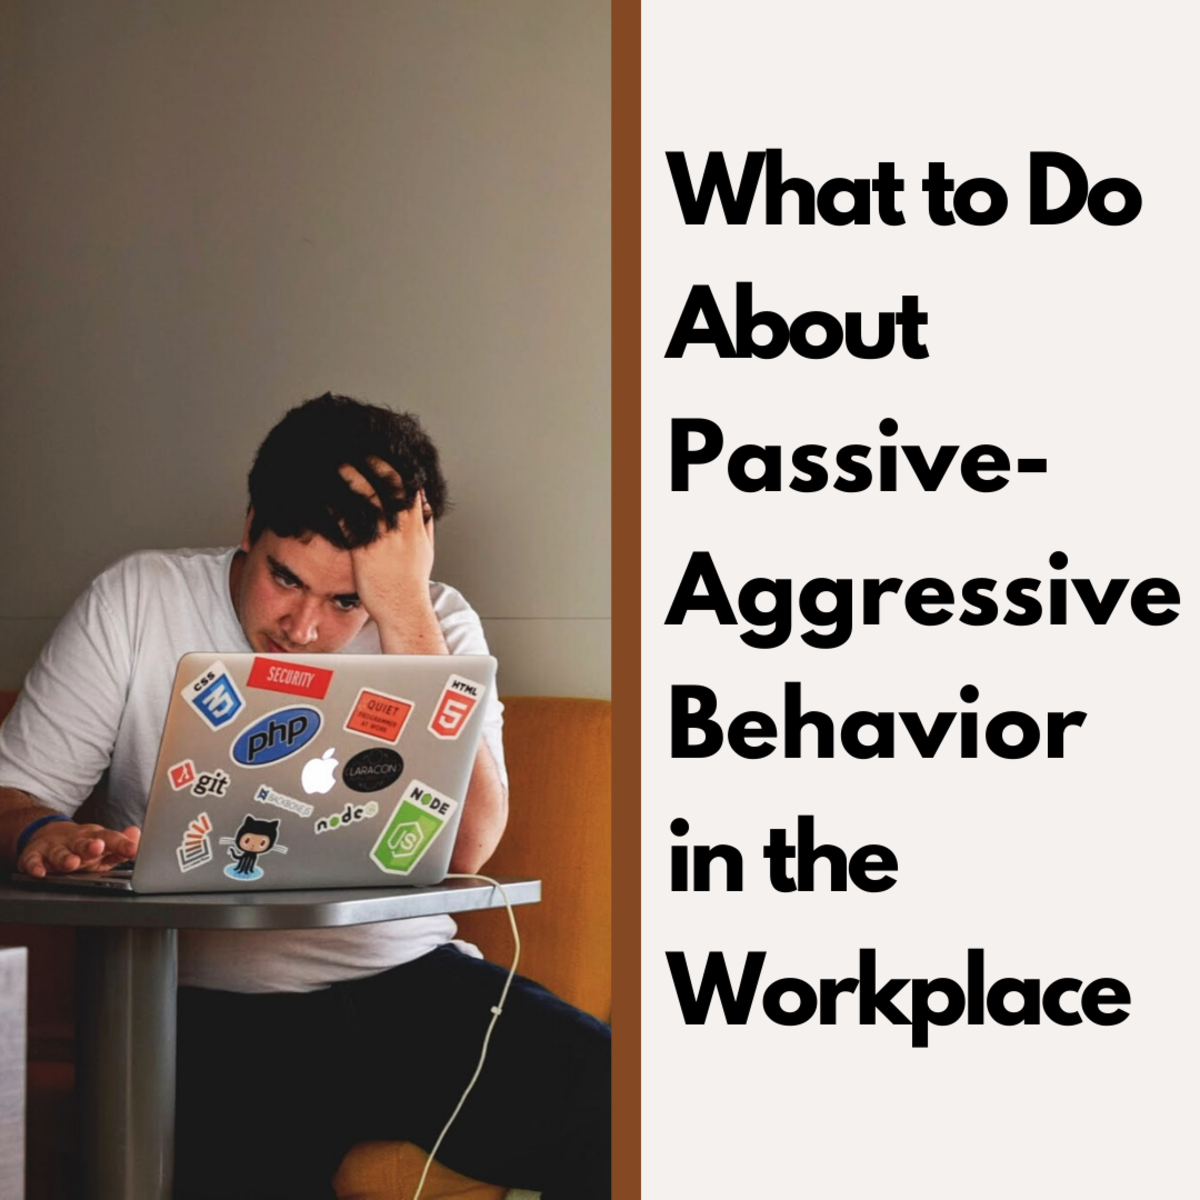 What to Do About Passive-Aggressive Behavior in the Workplace